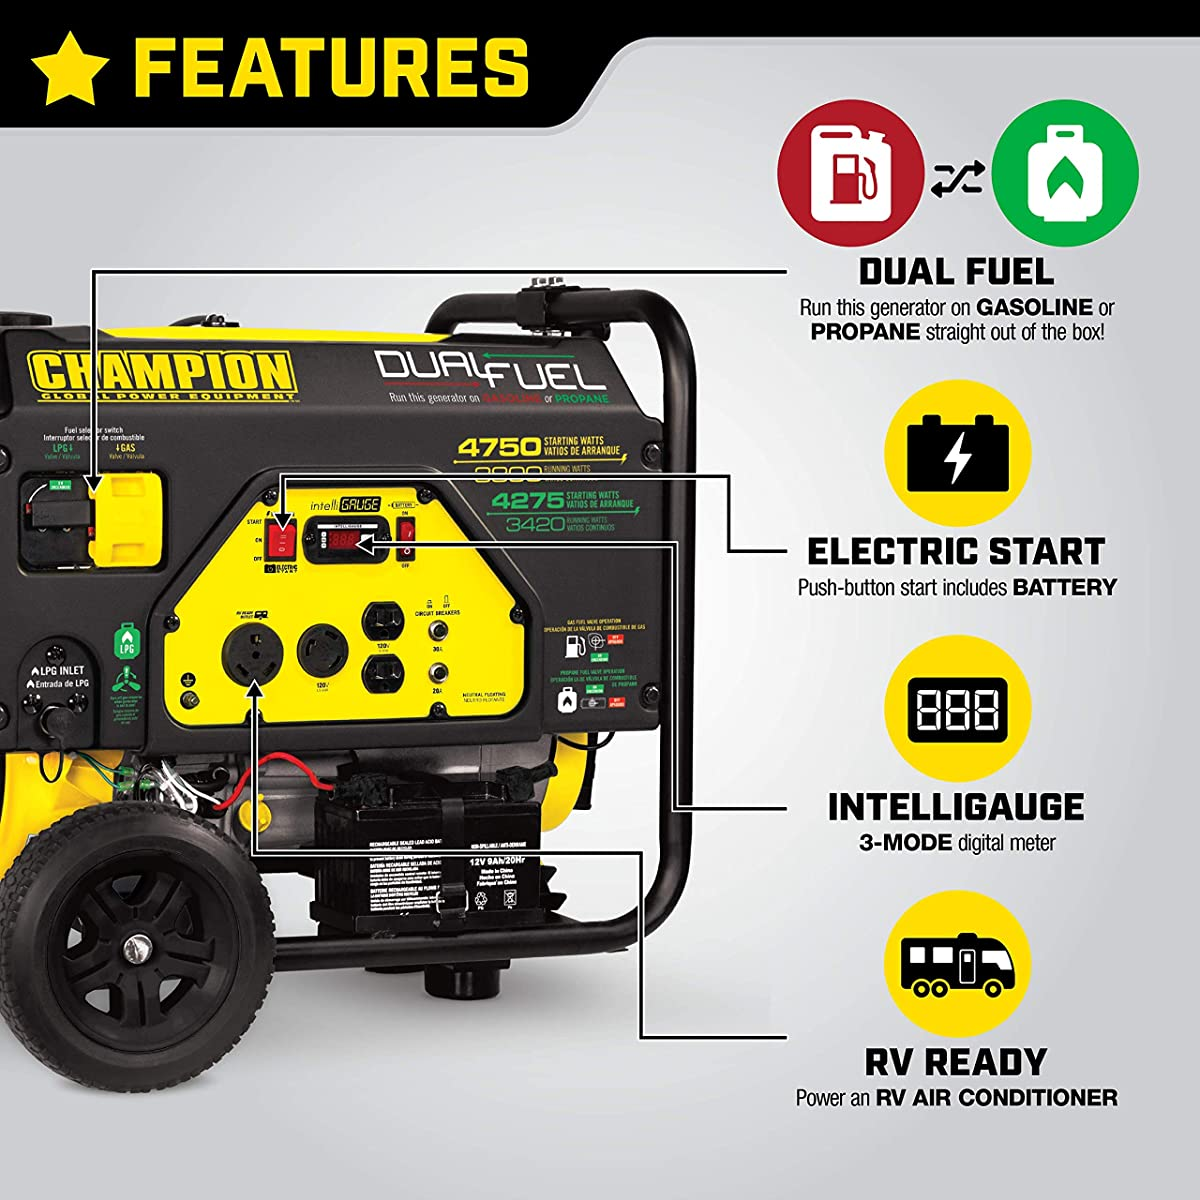 Best dual fuel inverter generator for RV